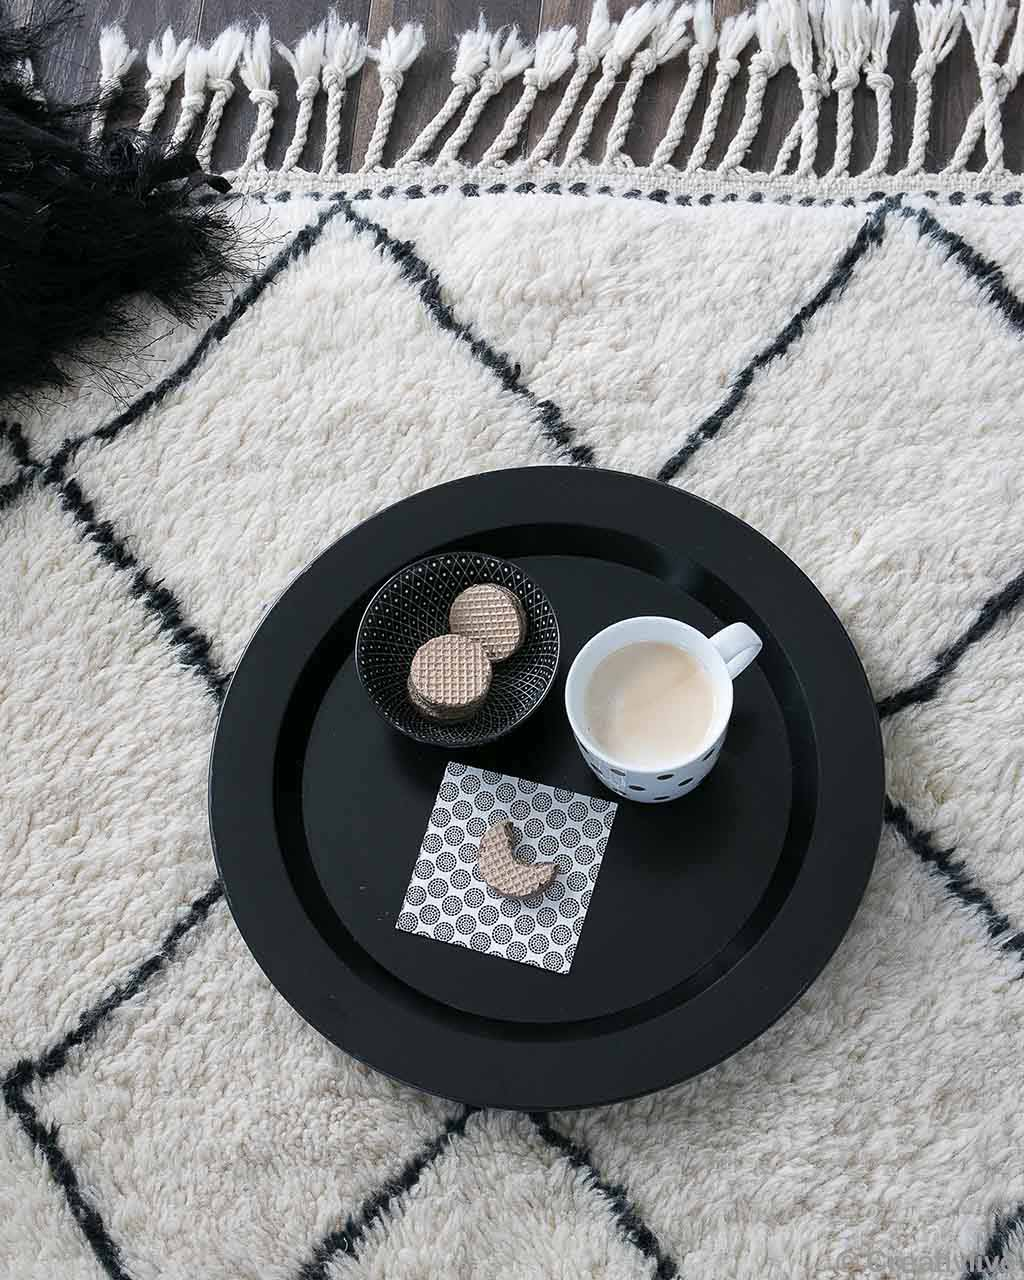 biscuits in bowl and tea cup in tray asian traditional carpet